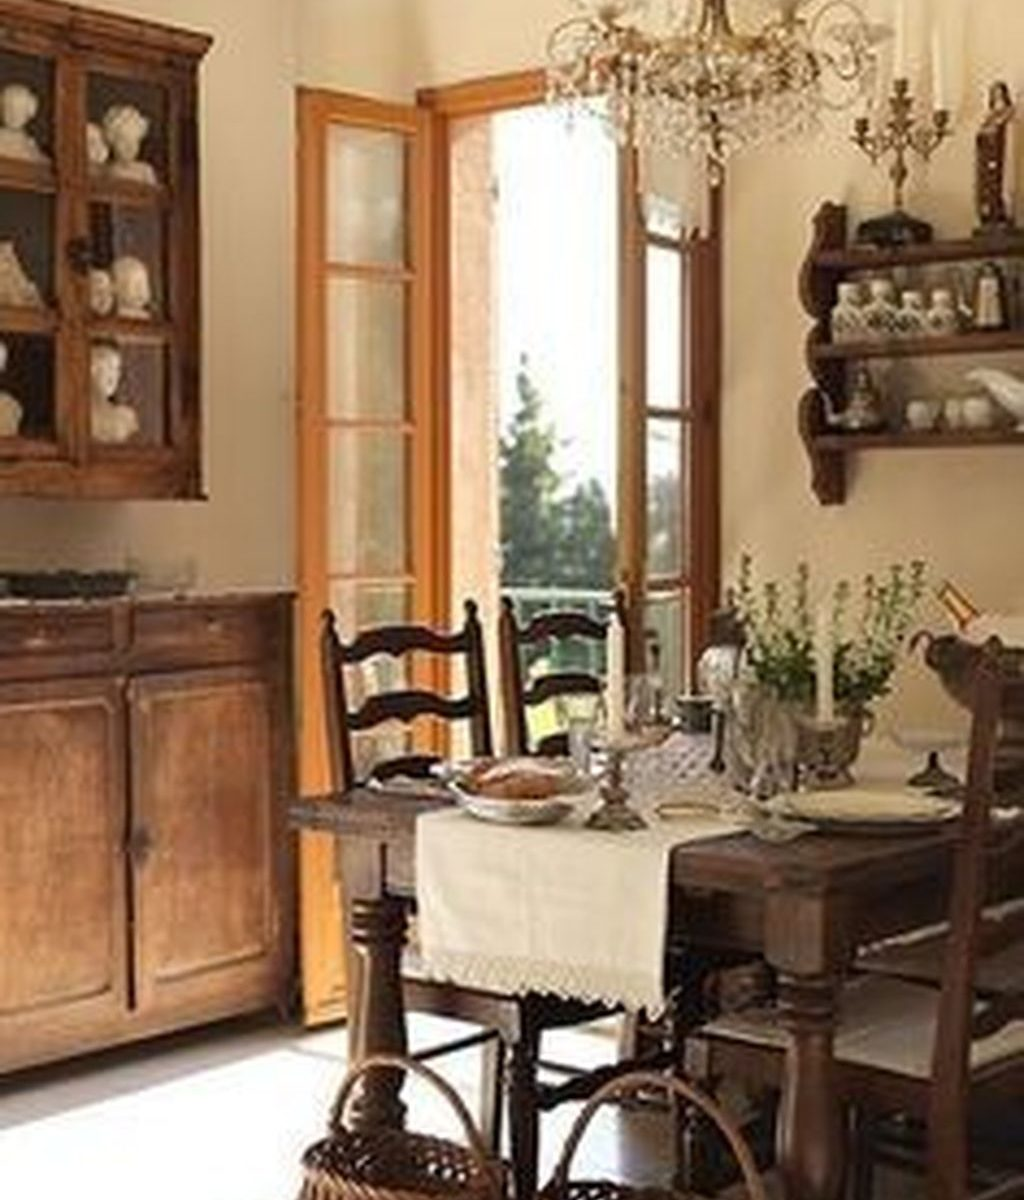 Inspiring Country Kitchen Decor Ideas You Should Copy 04